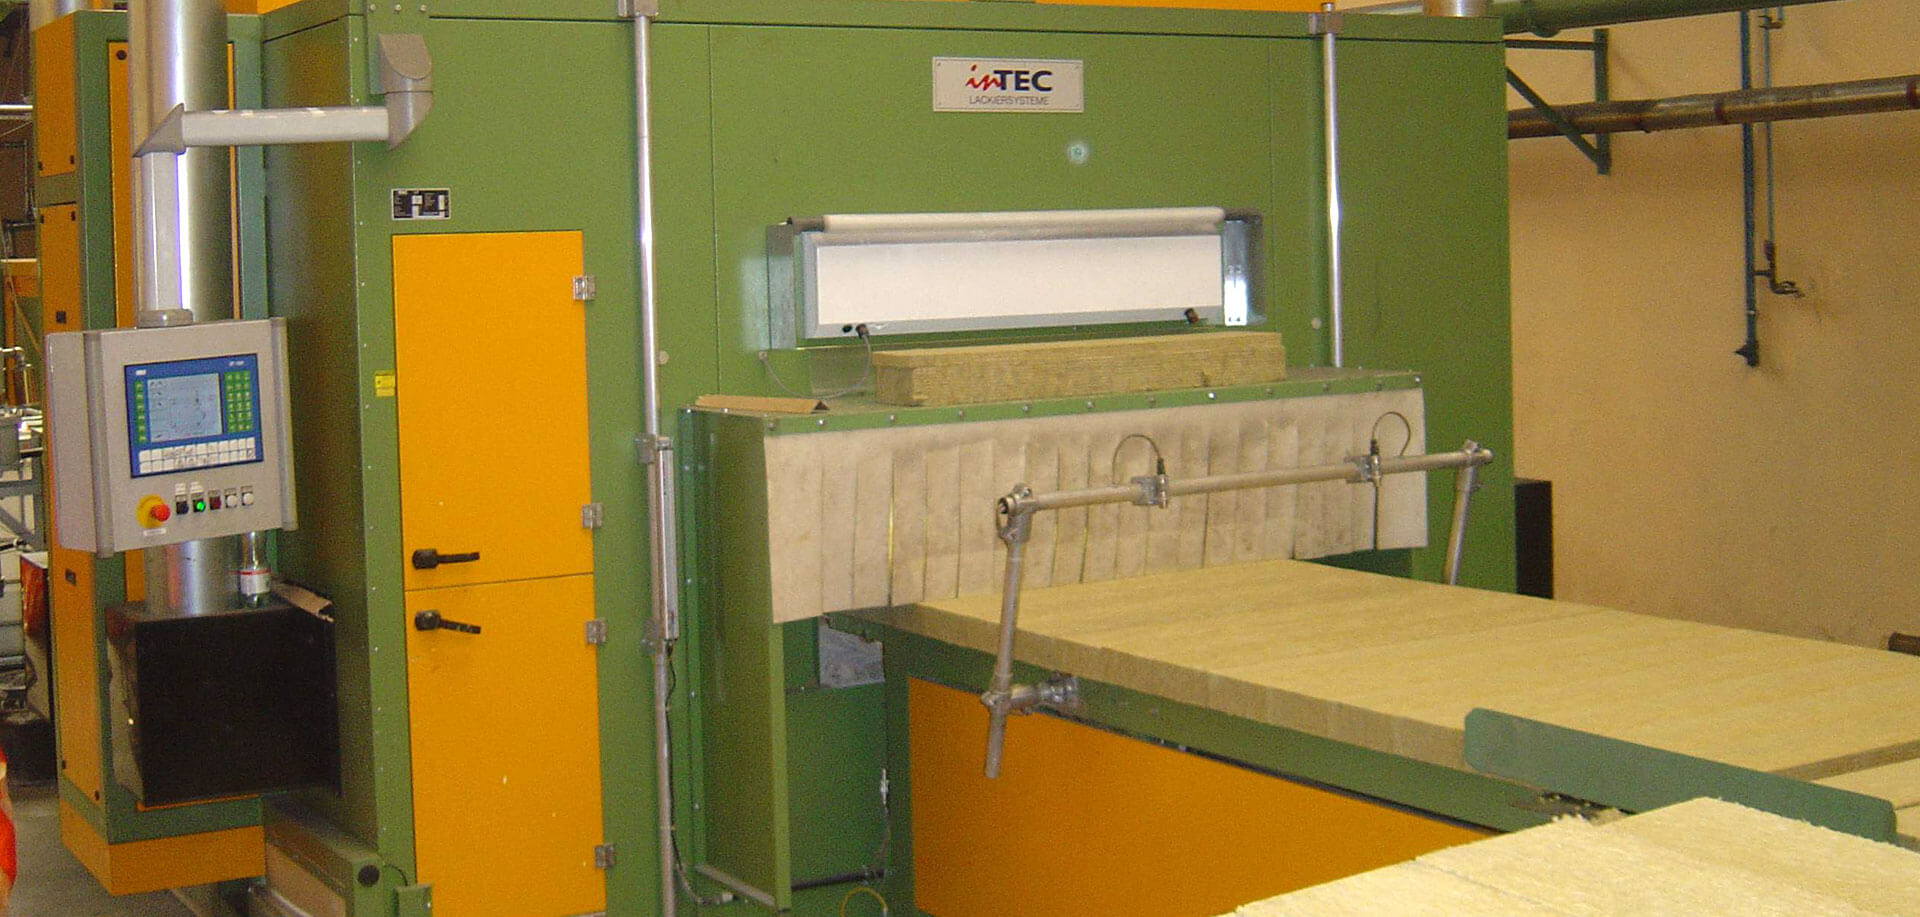 Coating systems for coating mineral wool panels or mineral wool slats - InTEC